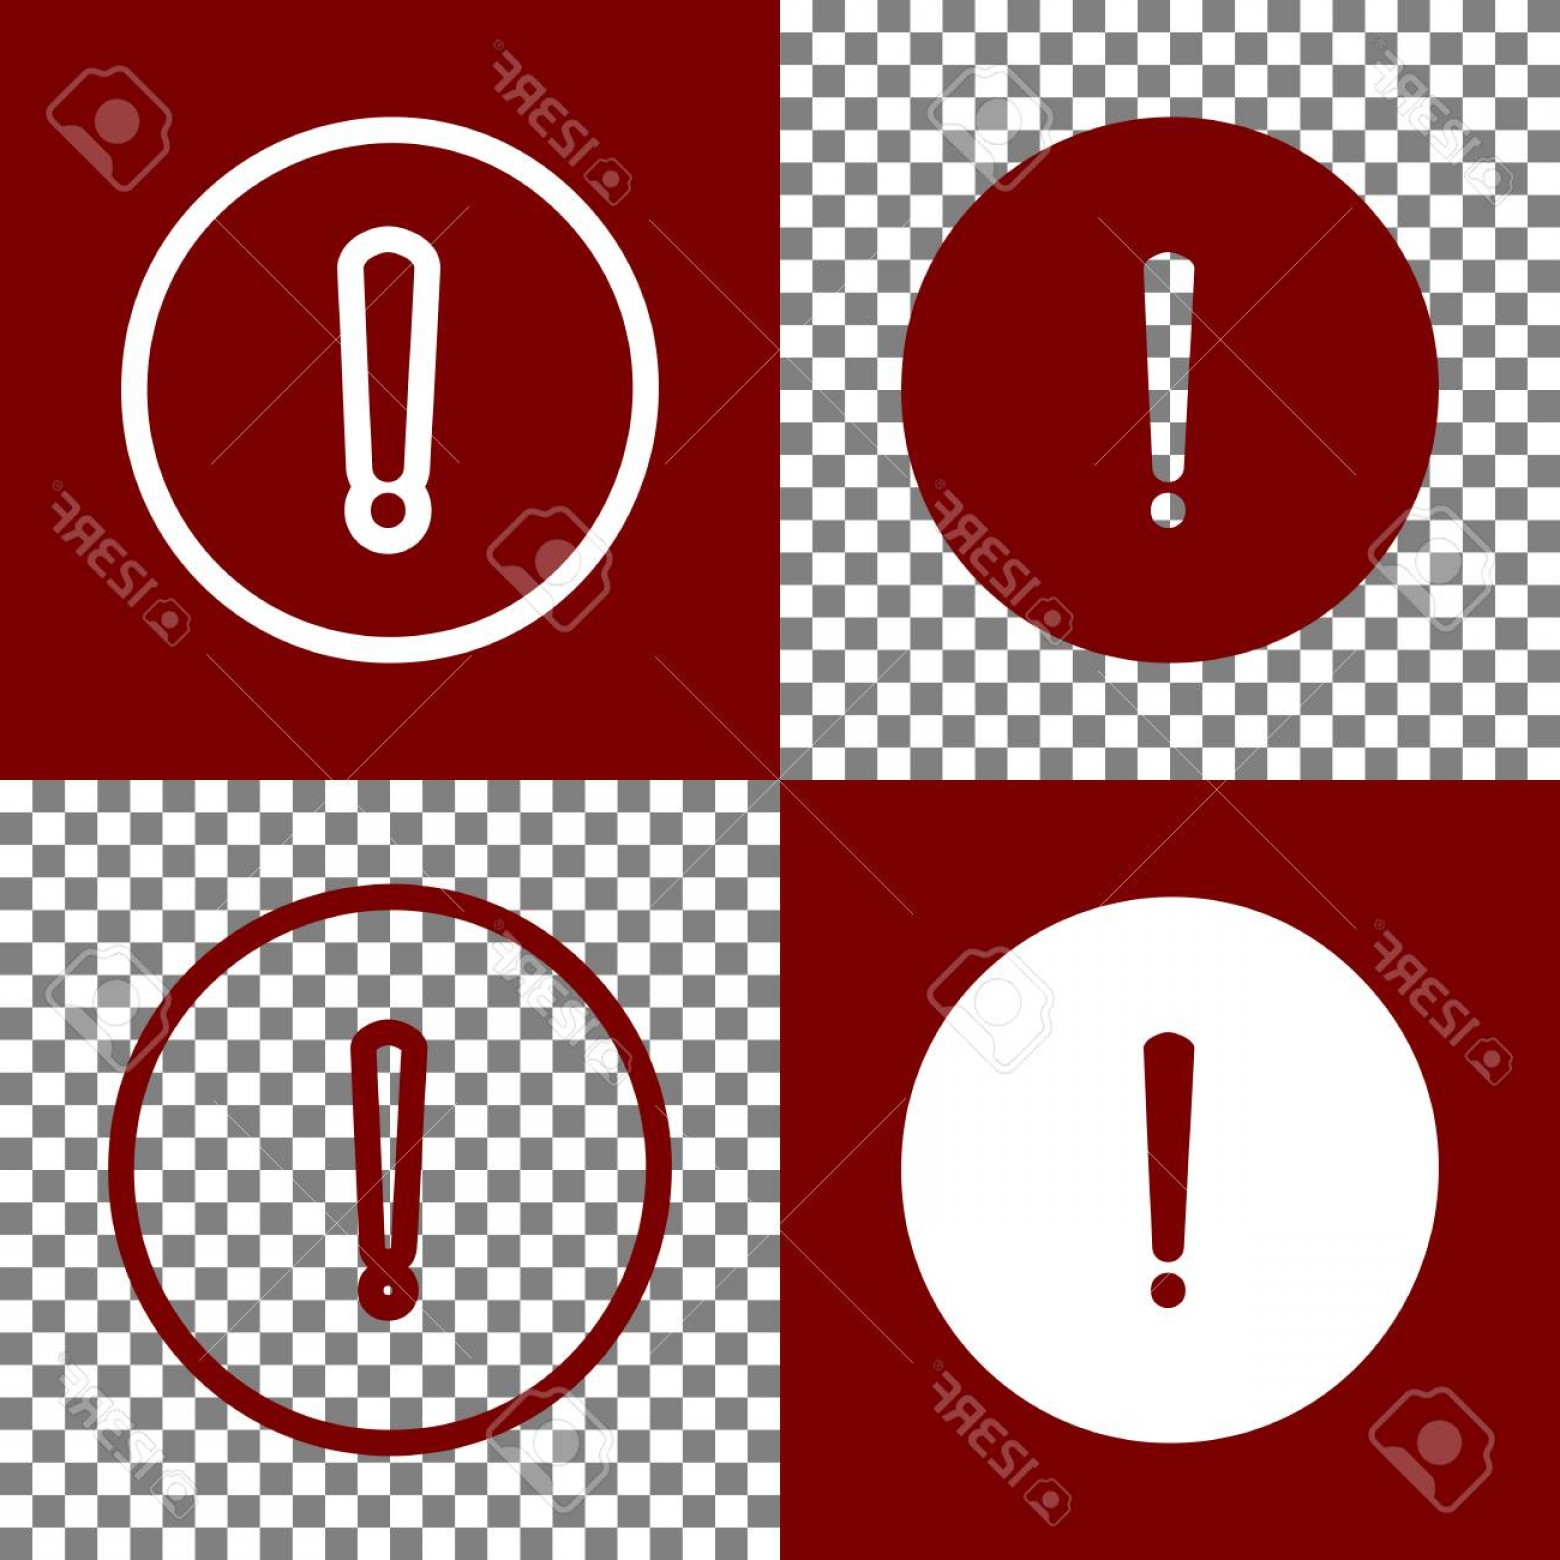 Subtracting Vectors BA: Photostock Vector Exclamation Mark Sign Vector Bordo And White Icons And Line Icons On Chess Board With Transparent Ba